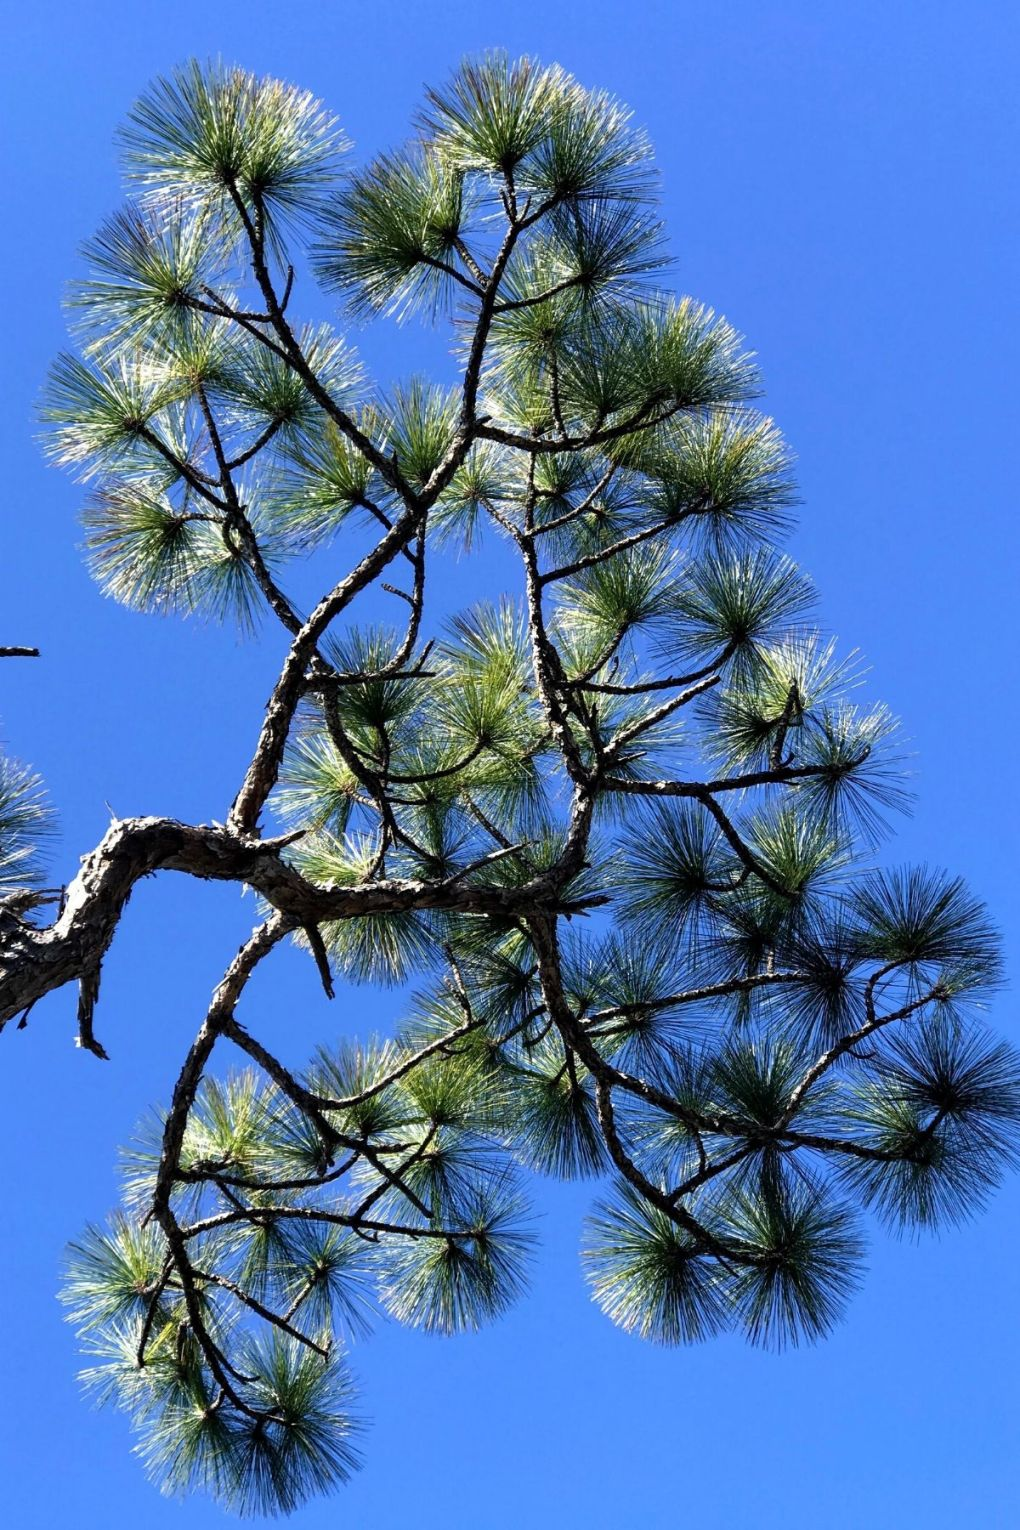 Edible and Medicinal Plants that Grow Just About Everywhere - Pine needles